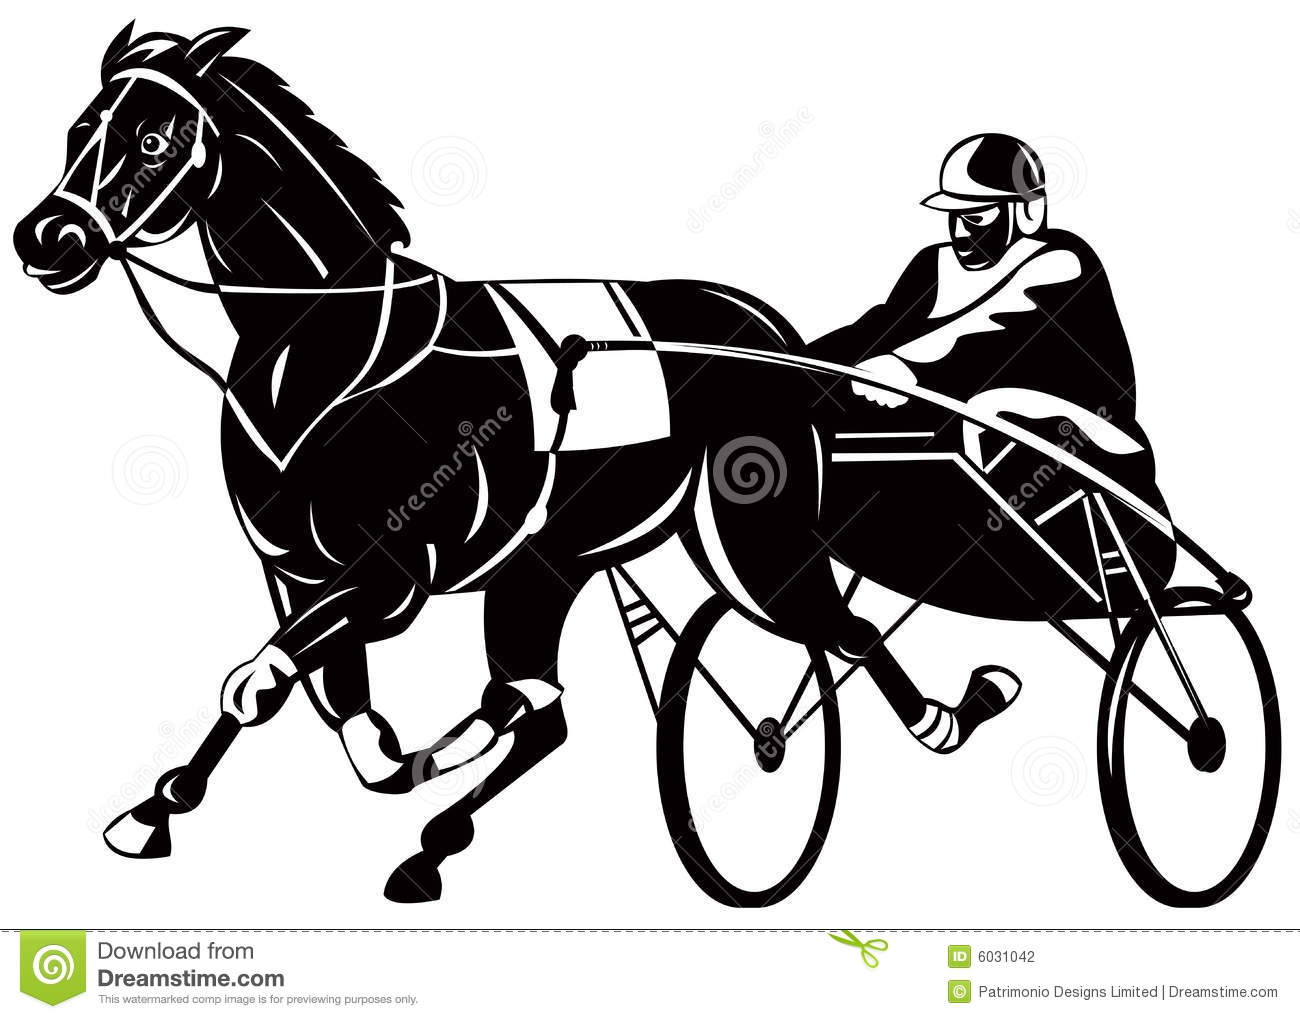 Harness racing clipart - Clipground